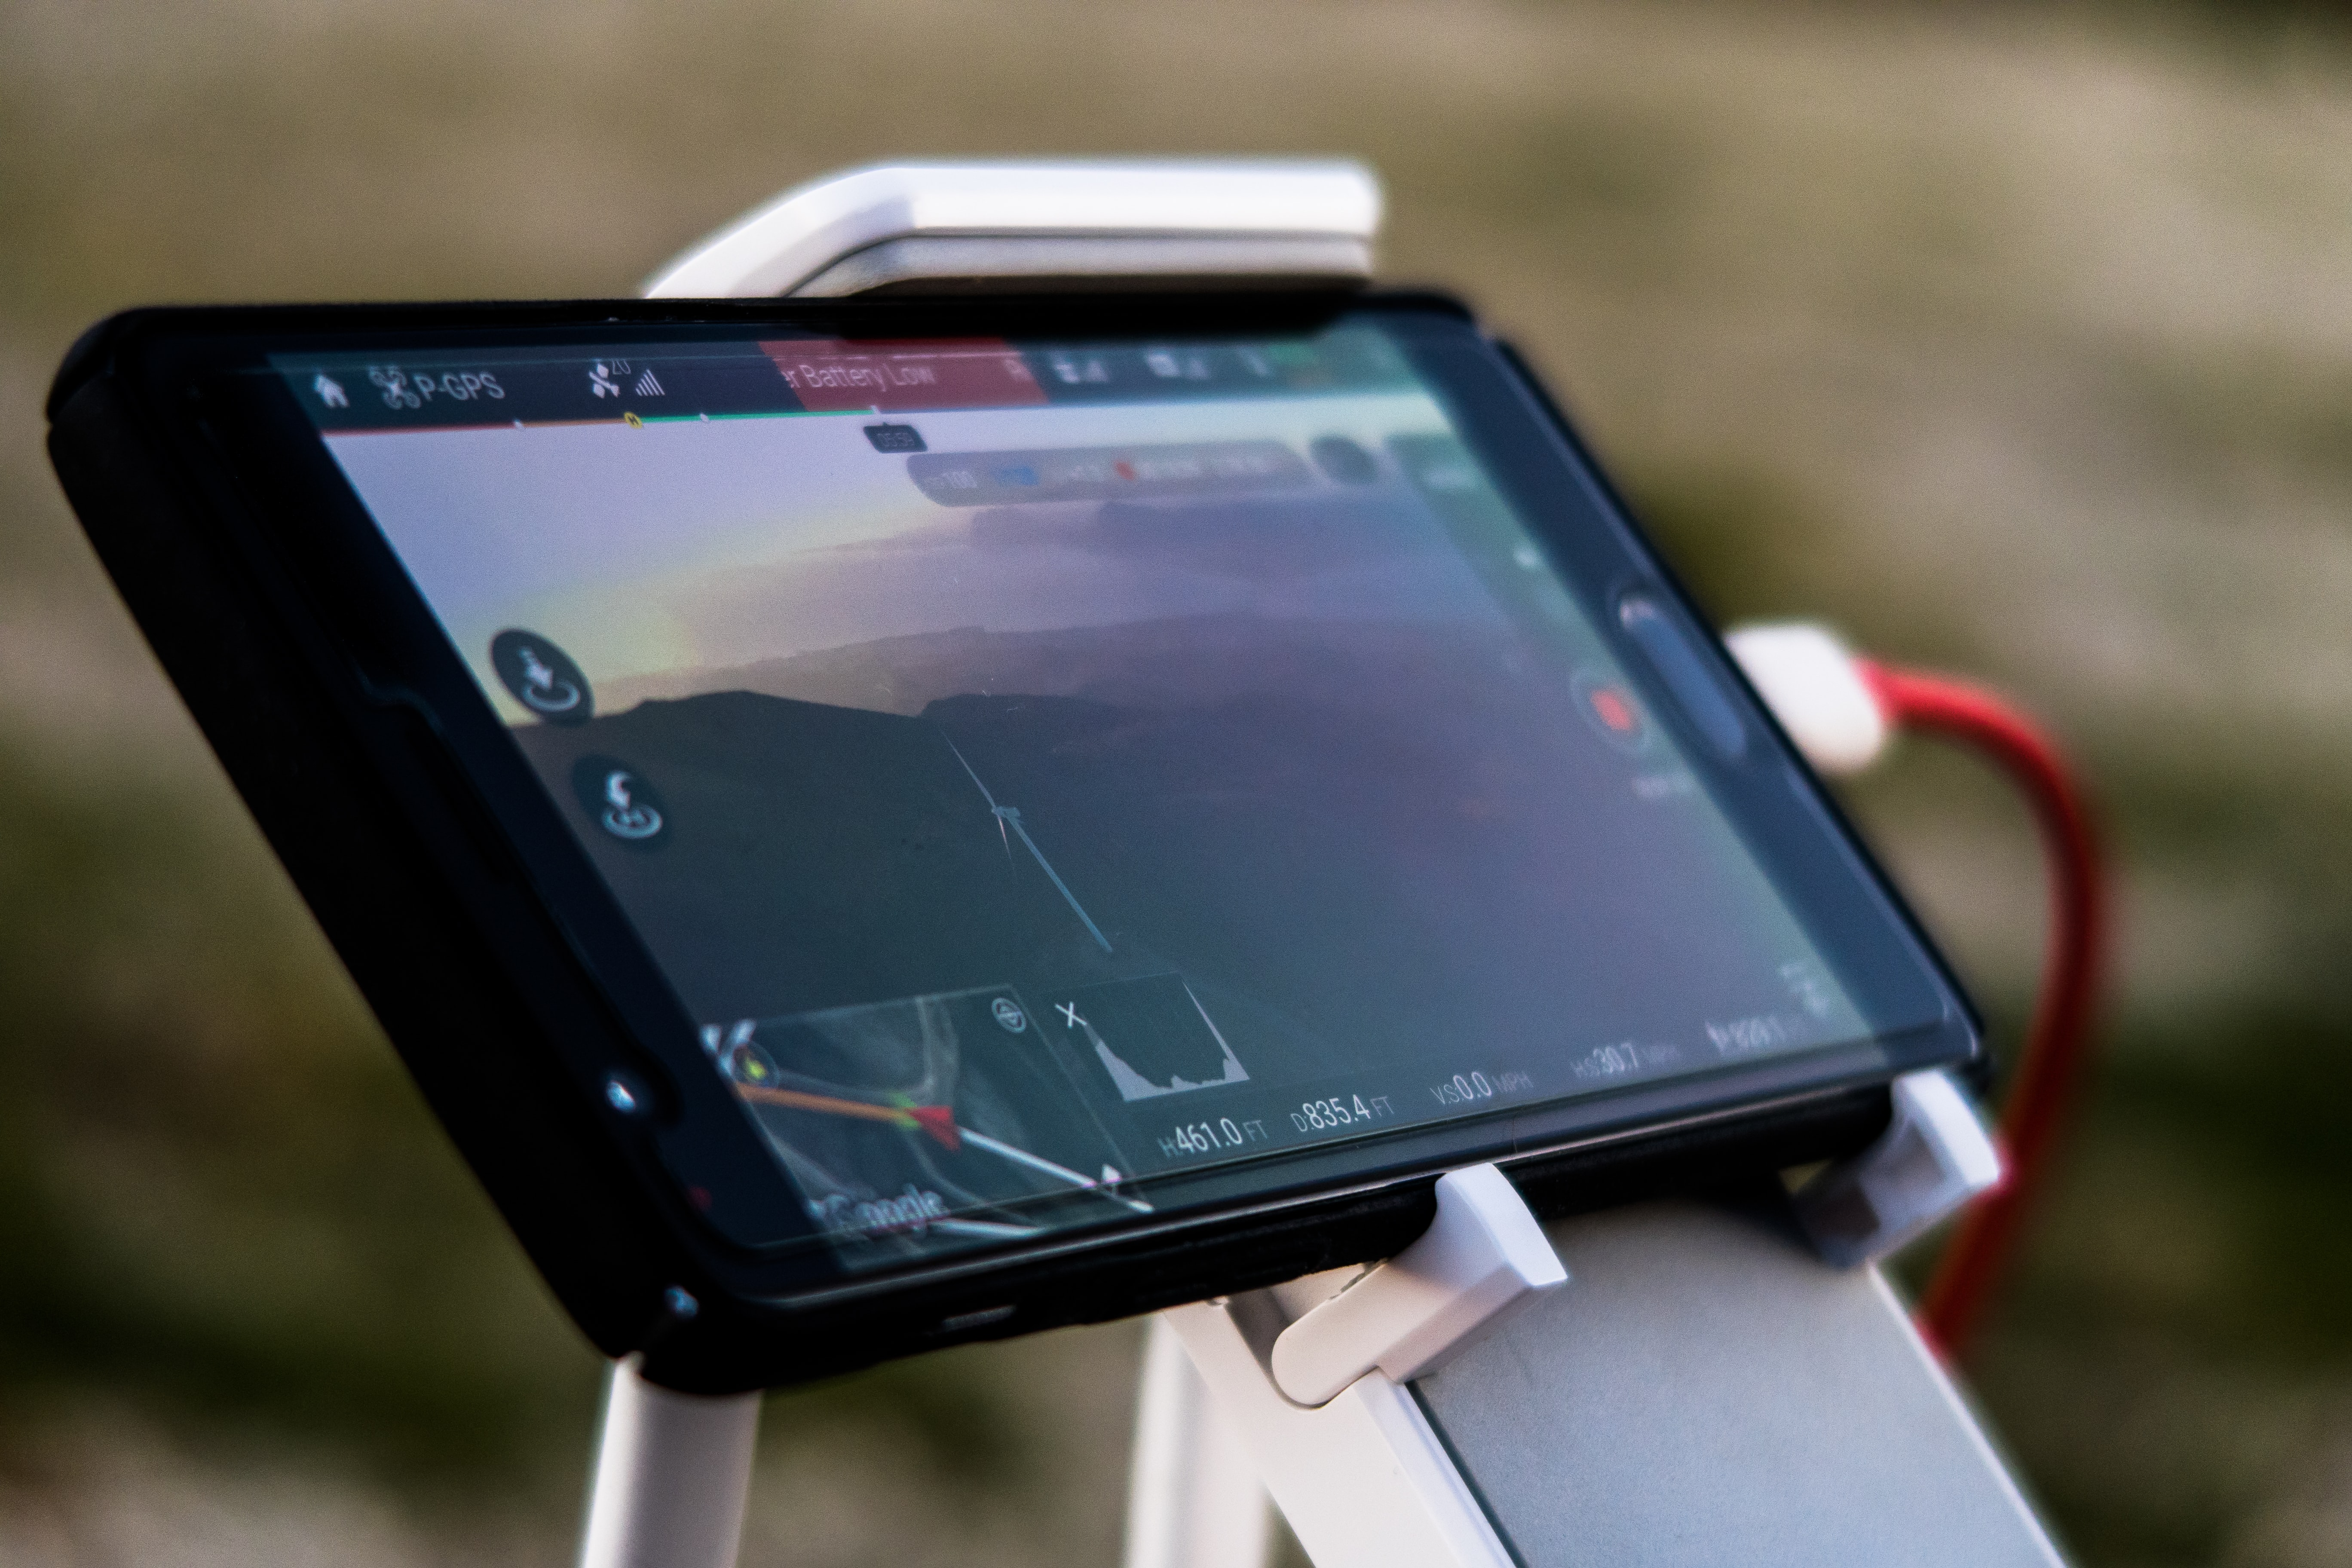 A close-up of a smartphone in a stand used as a car GPS system